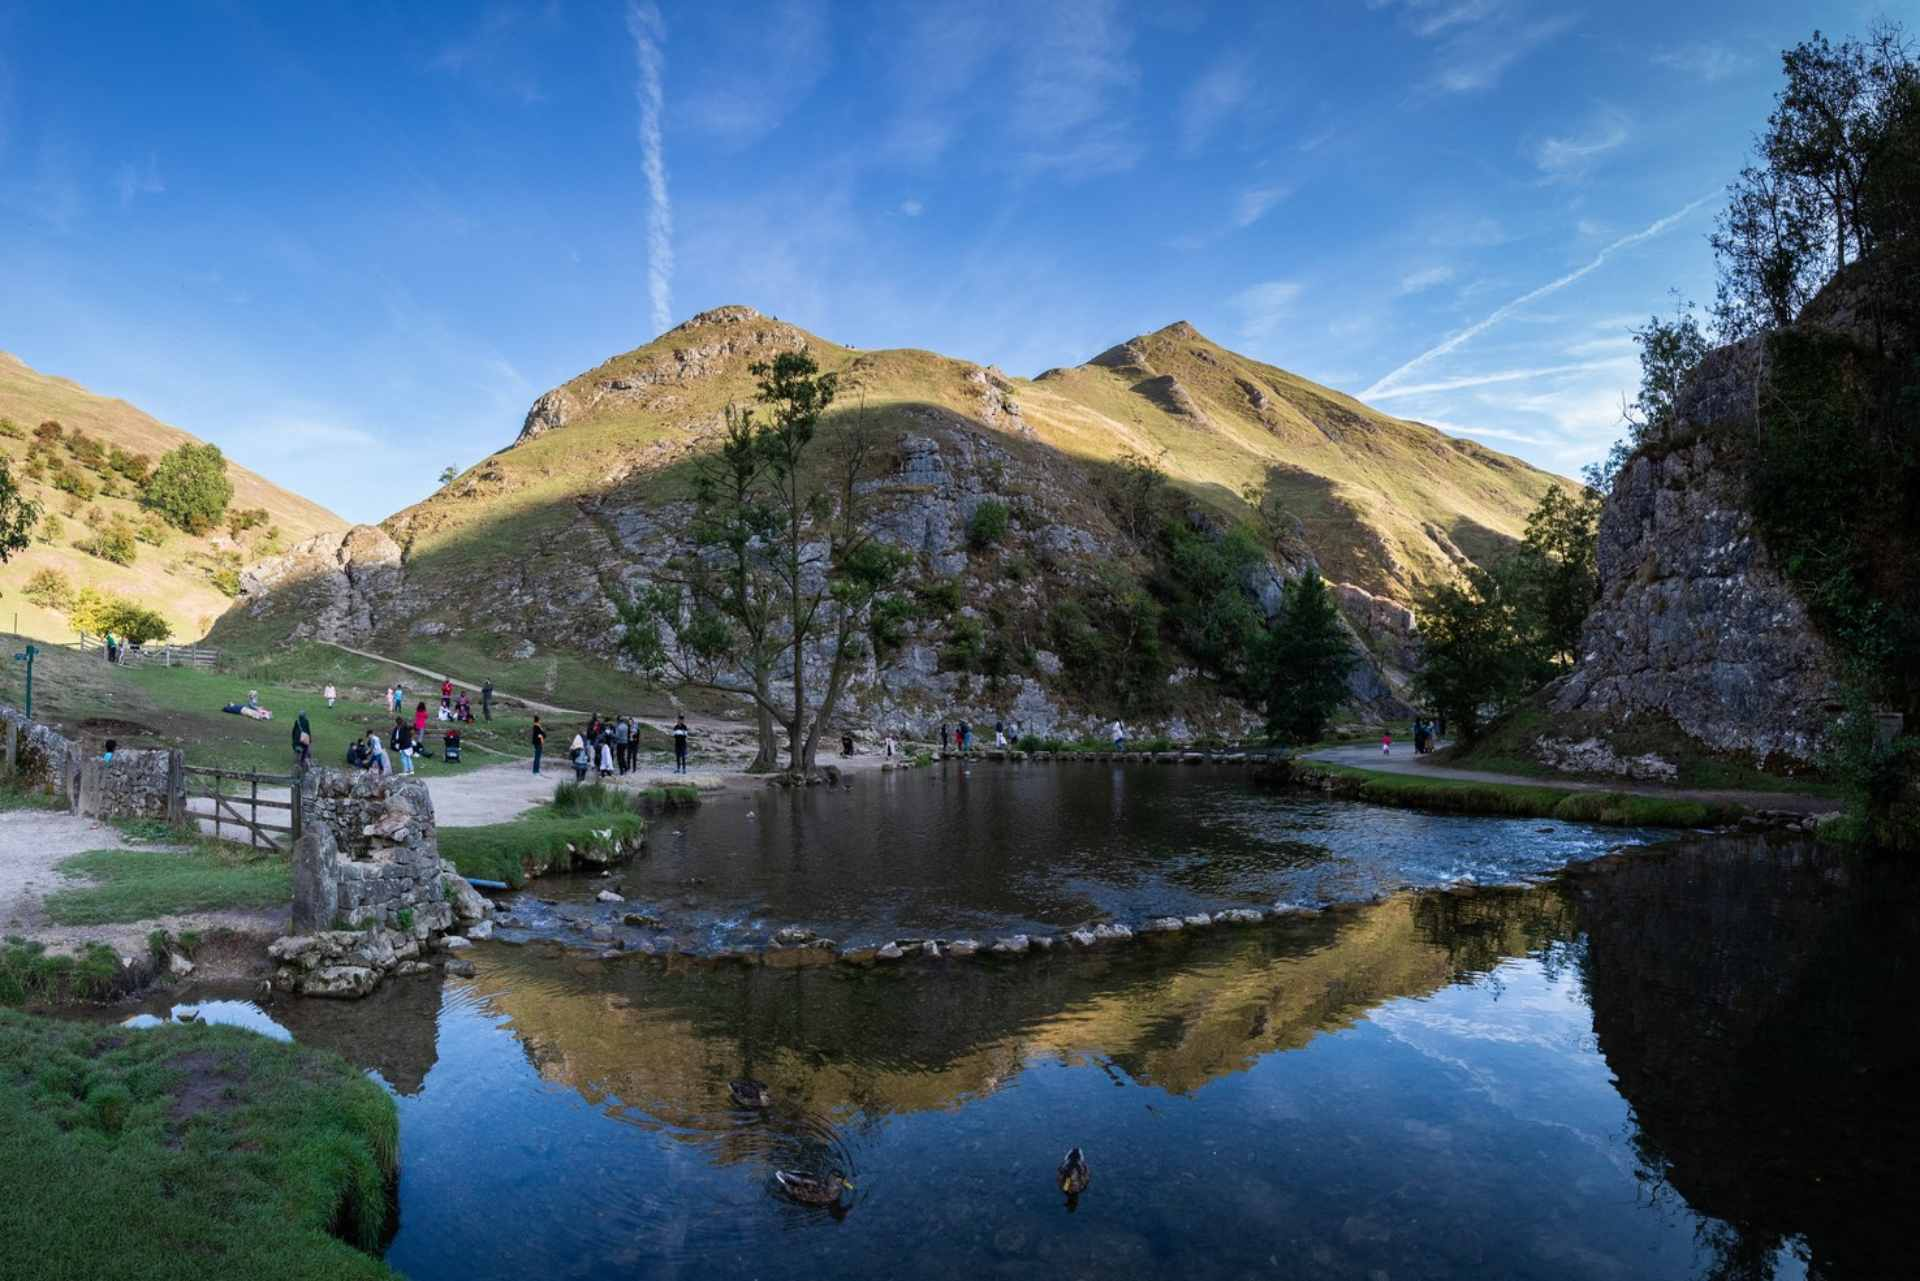 dovedale-stepping-stones-crossing-river-in-front-of-hill-on-sunny-day-best-peak-district-walks